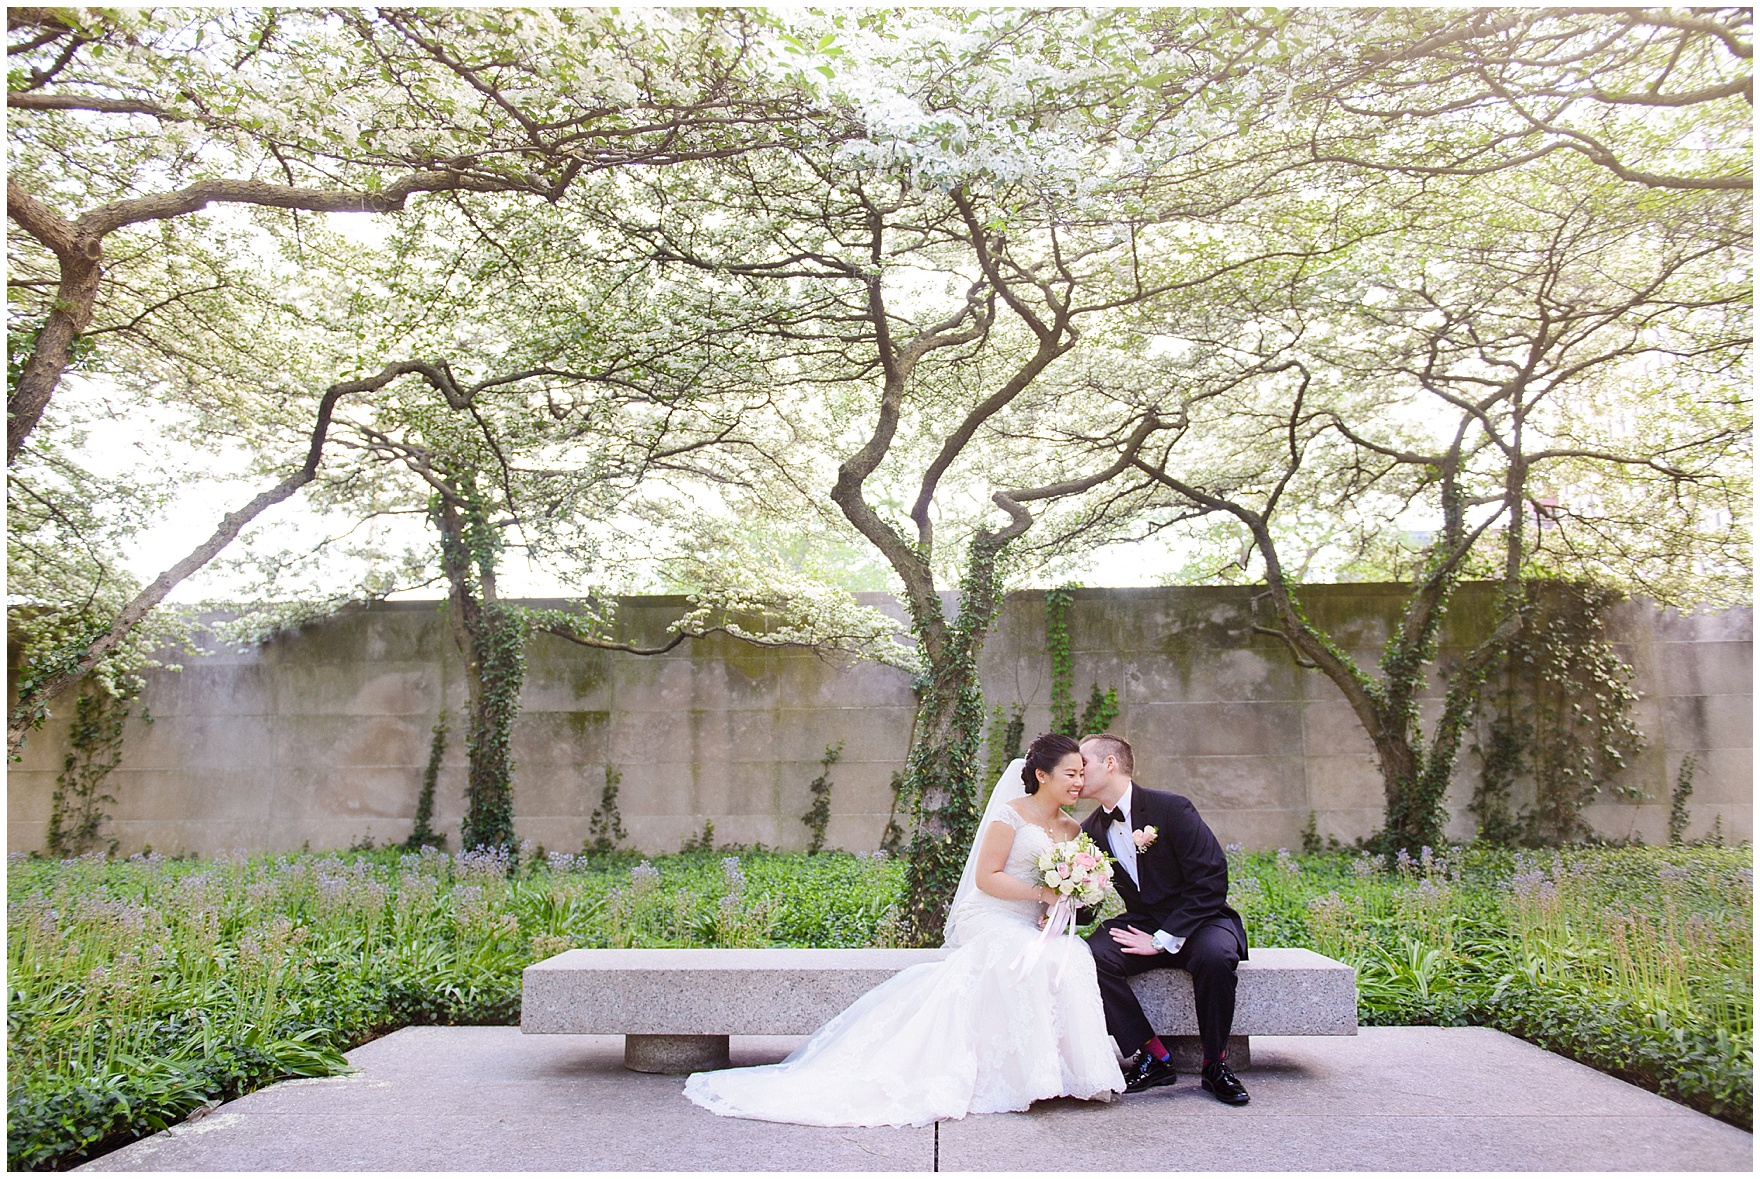 A bride and groom pose in the South Gardens of the Art Institute of Chicago before a University Club of Chicago wedding.